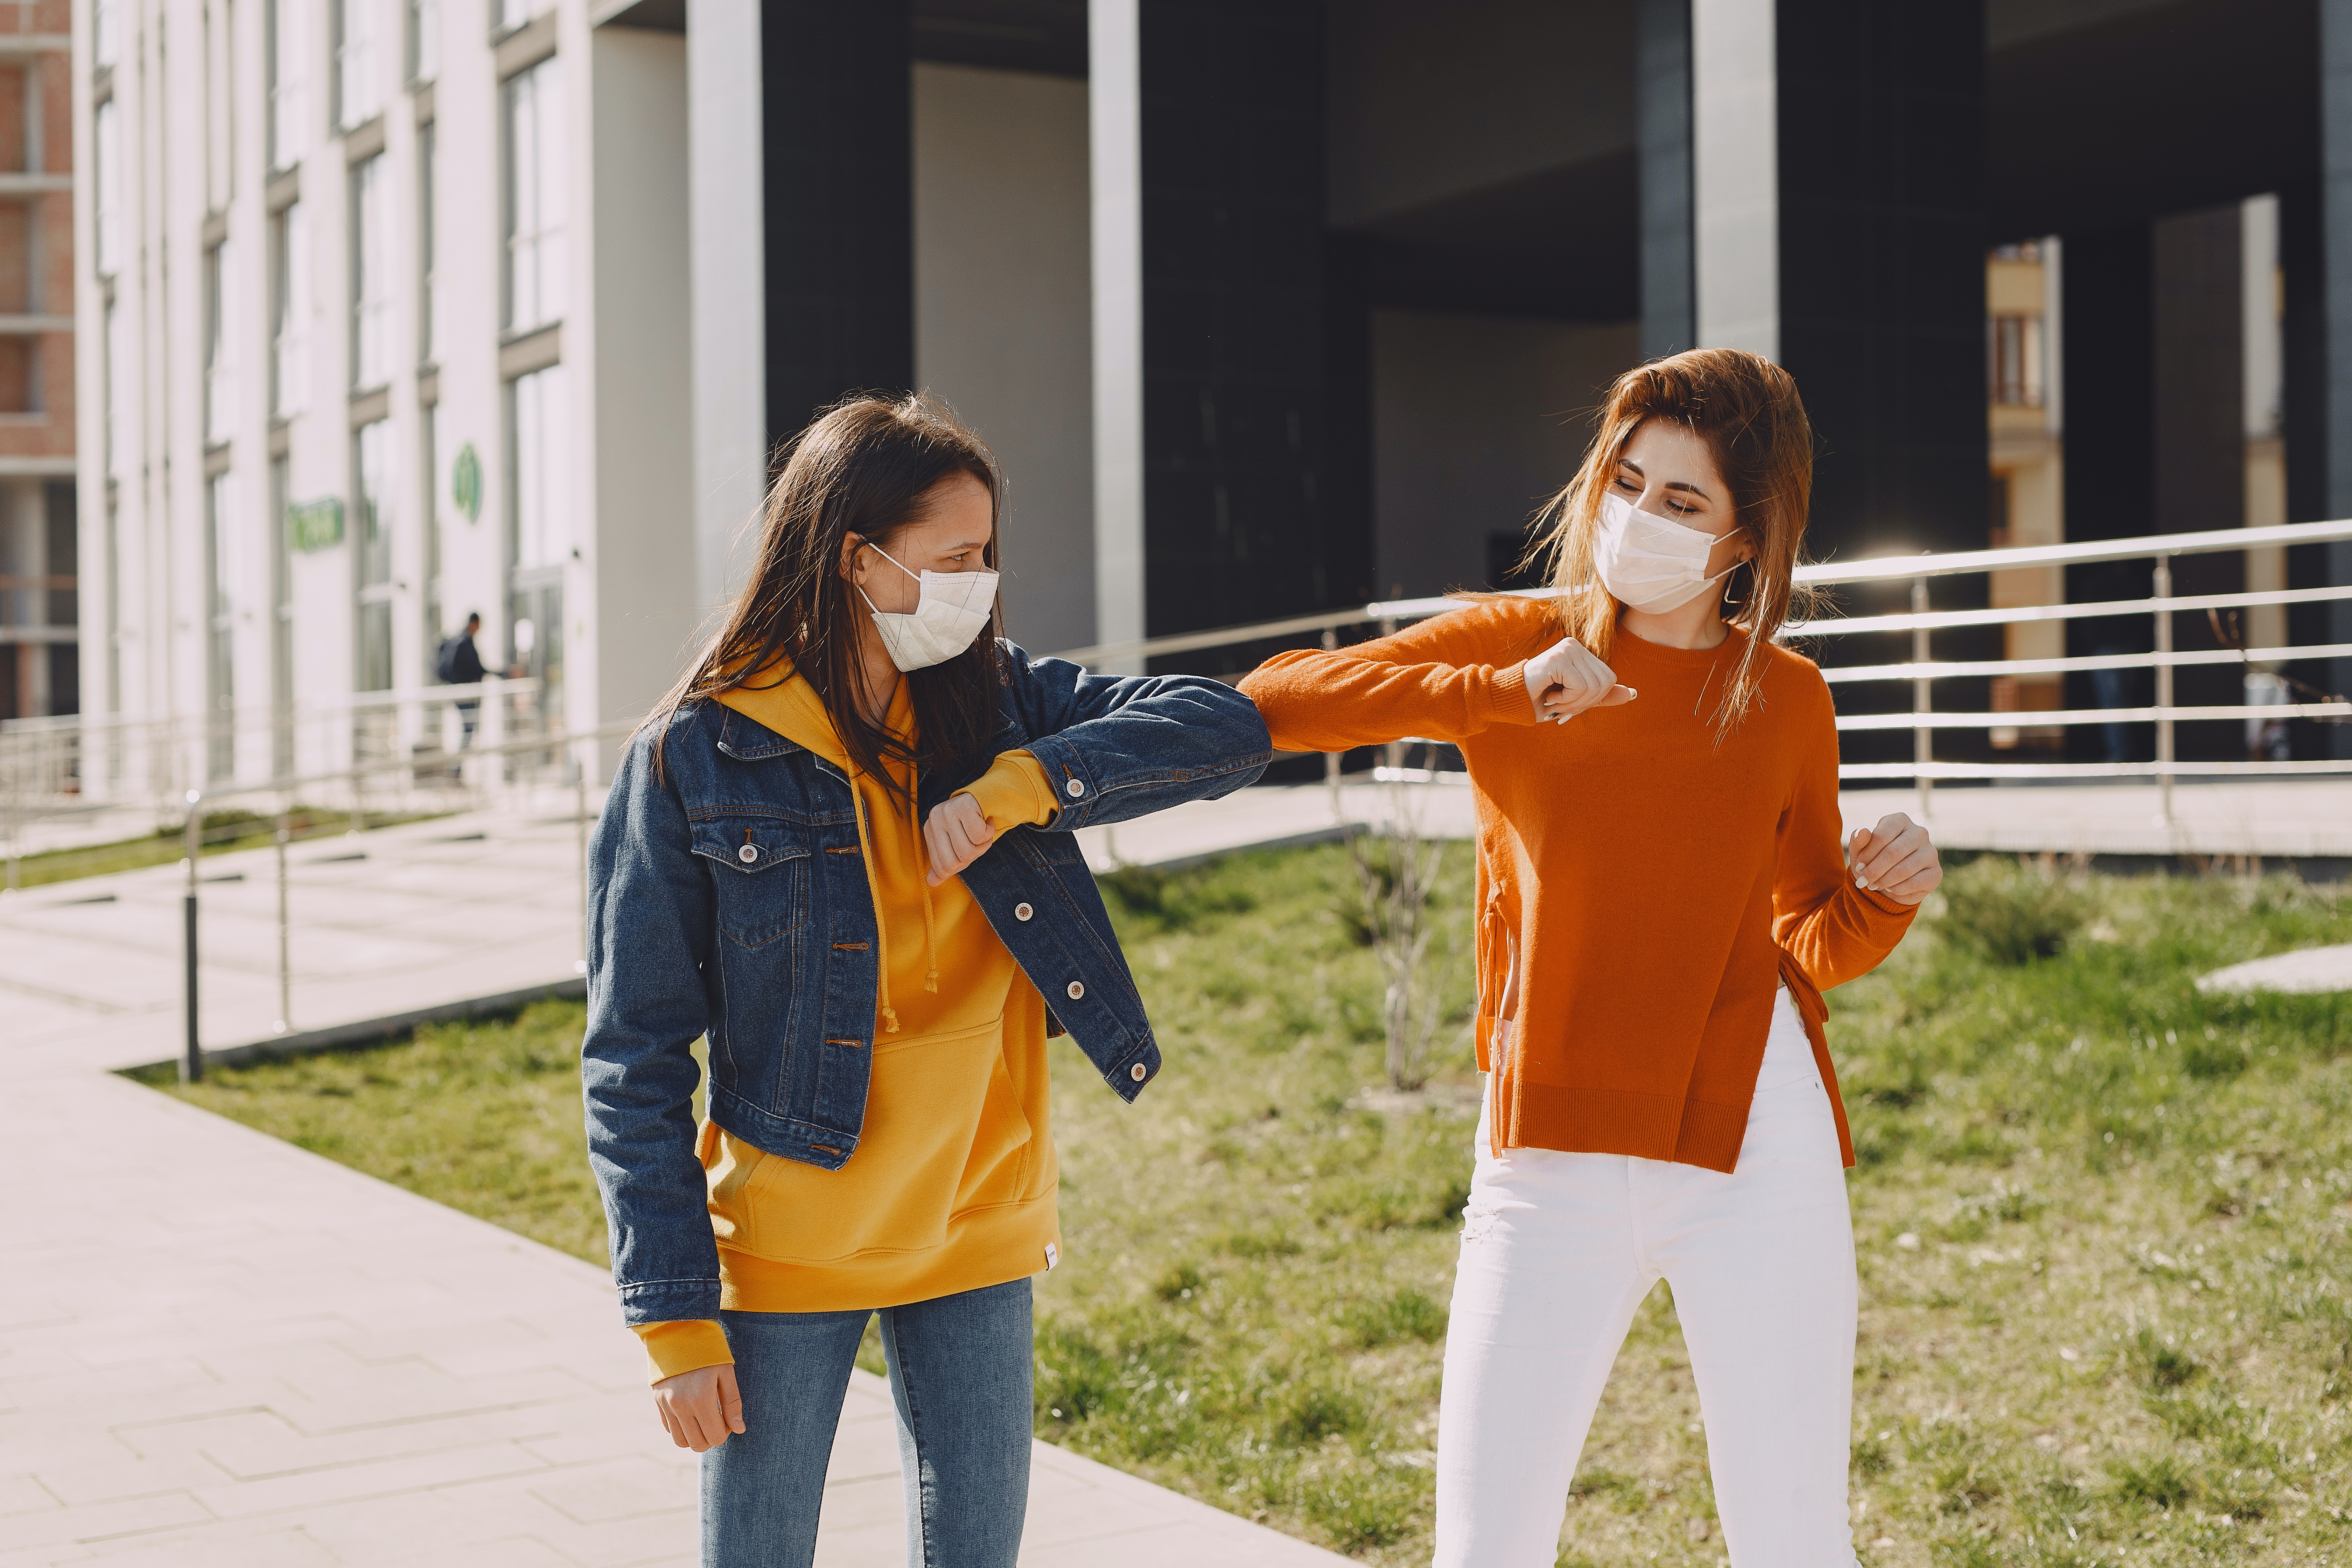 Masked women elbow bump while visiting each other outside